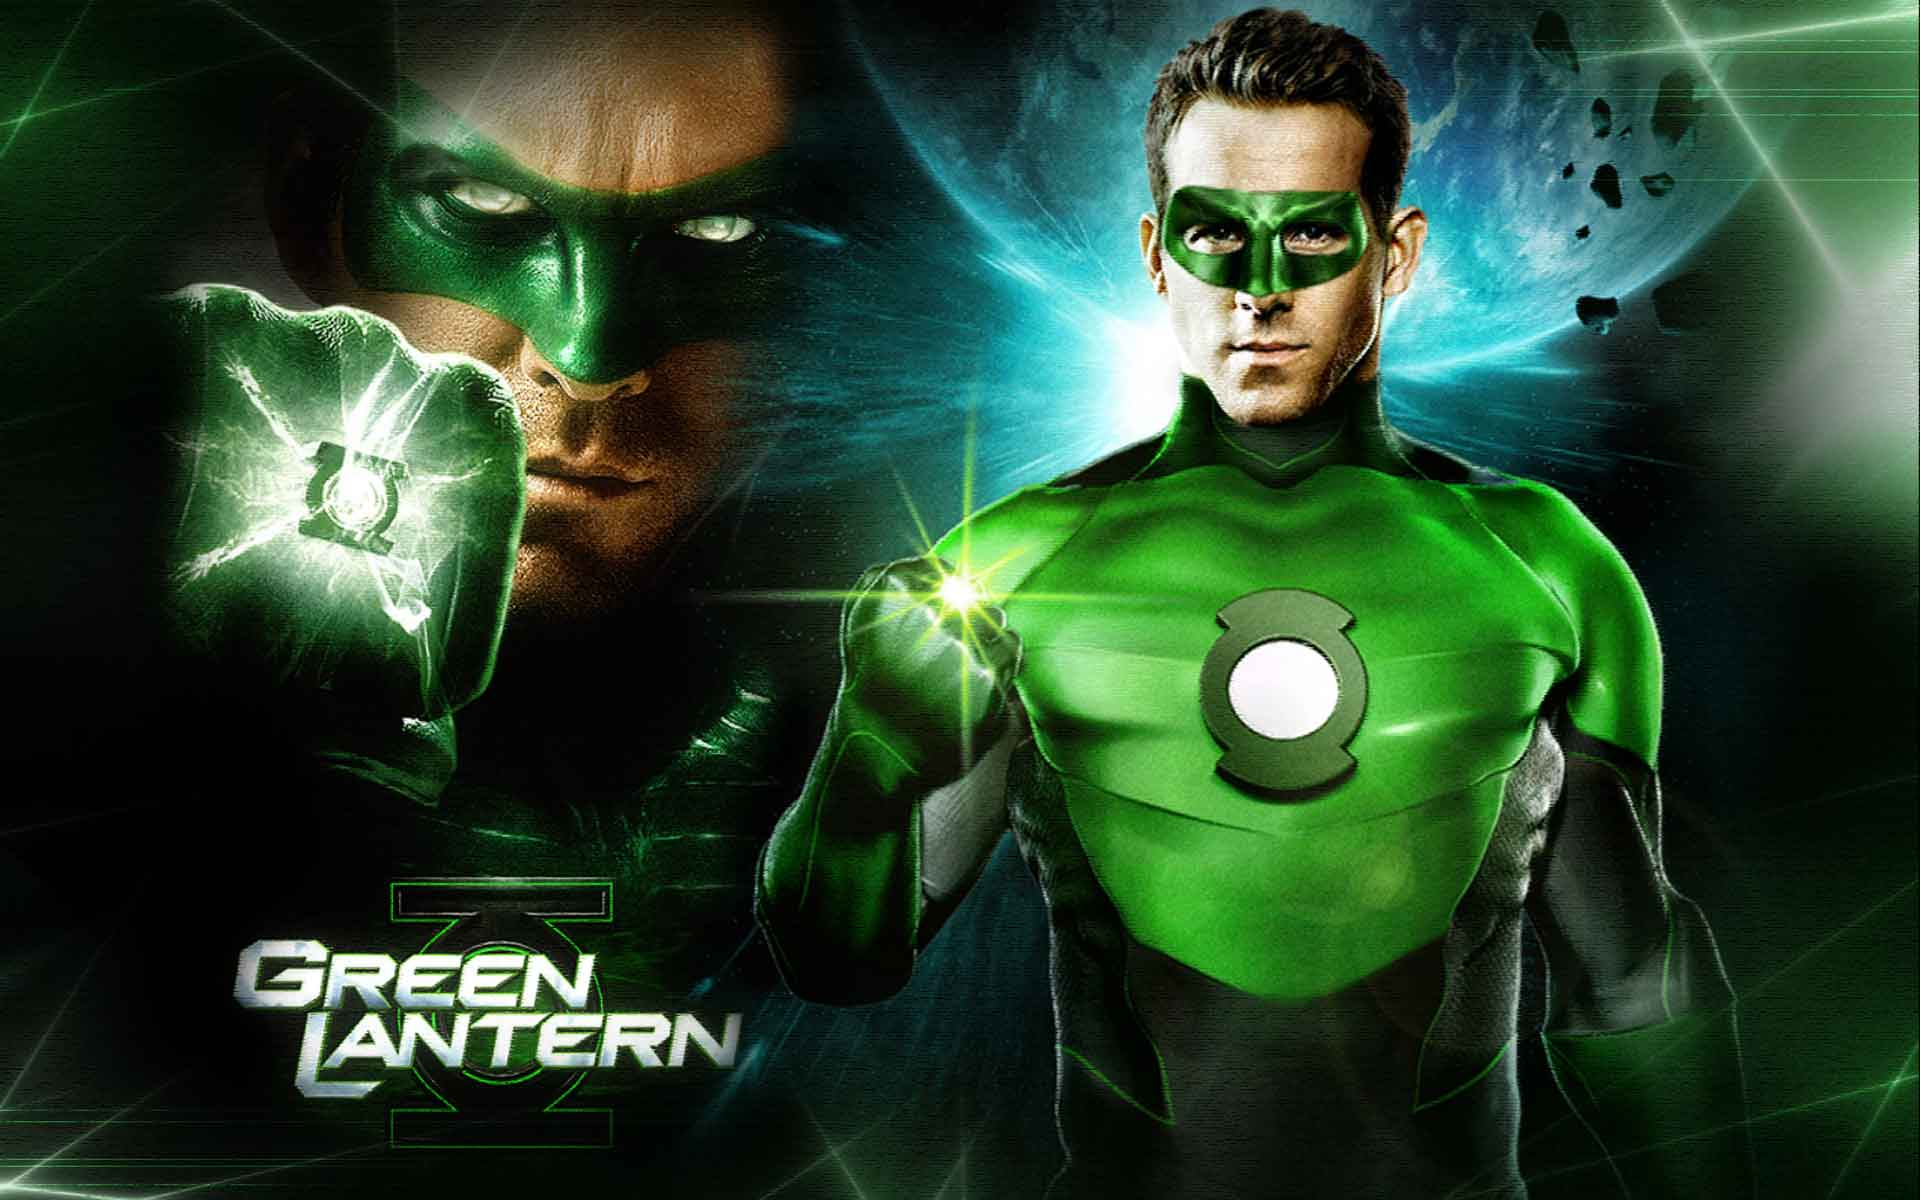 Green Lantern Wallpapers 27 259052 Image HD Wallpapers